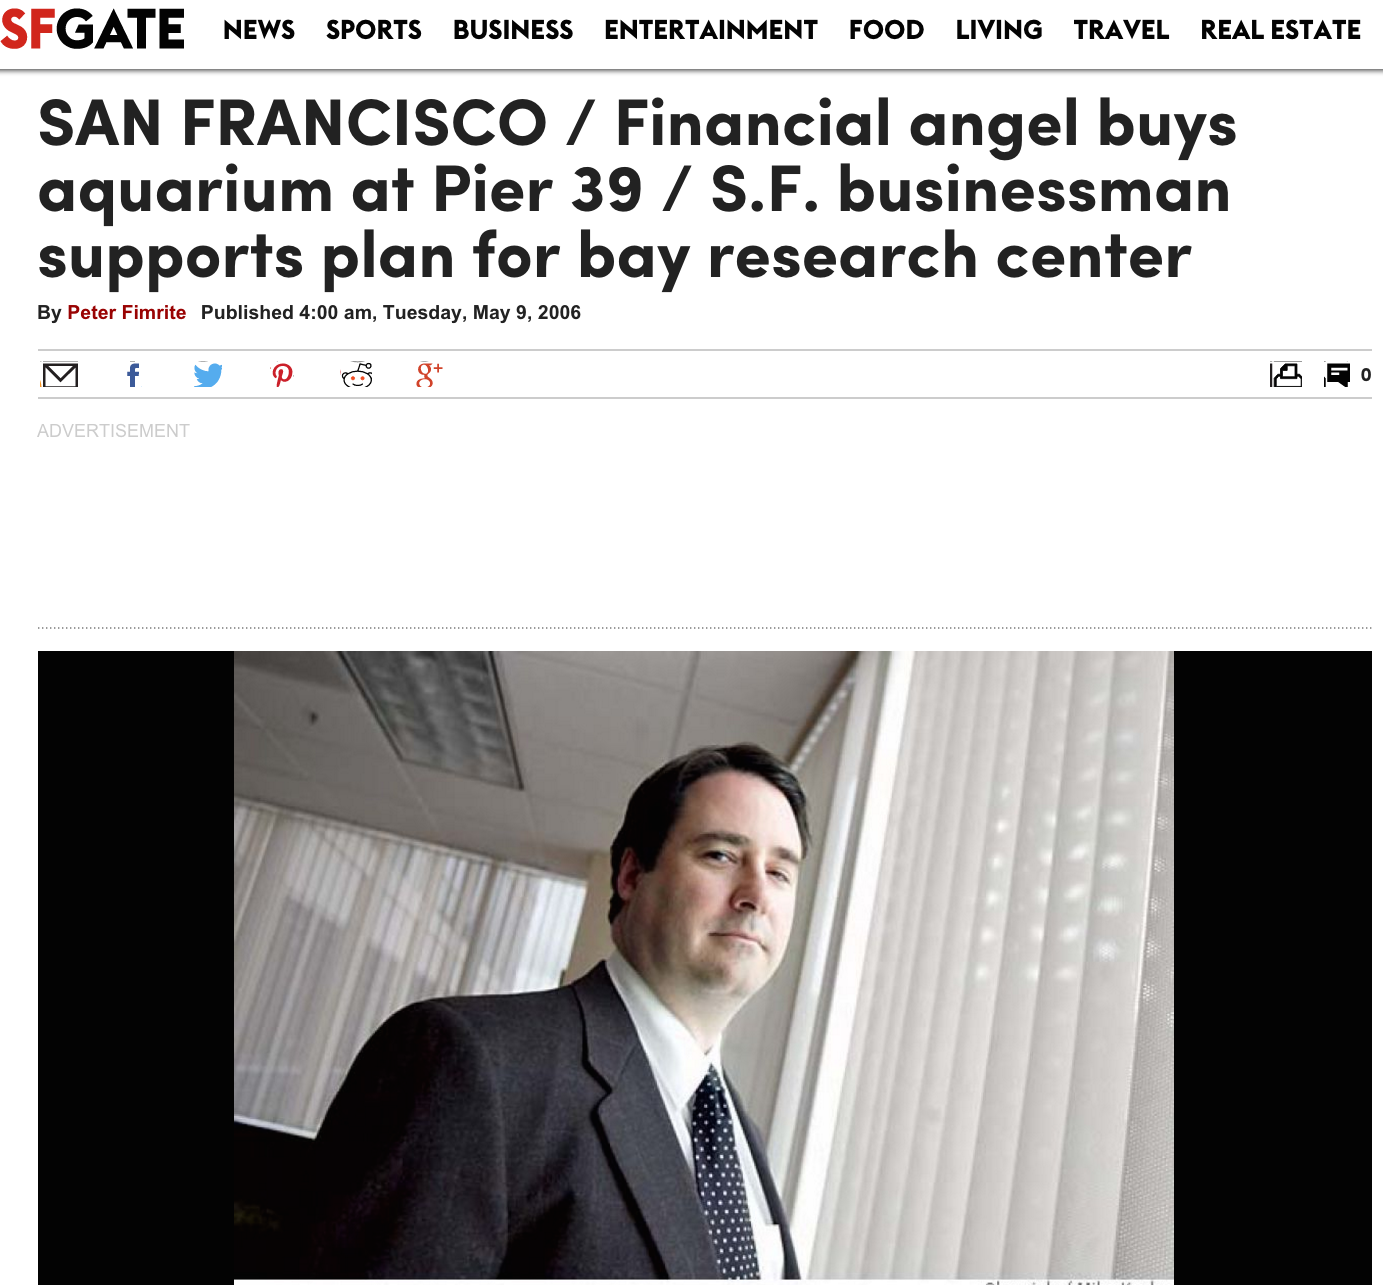 Financial angel buys aquarium at Pier 39